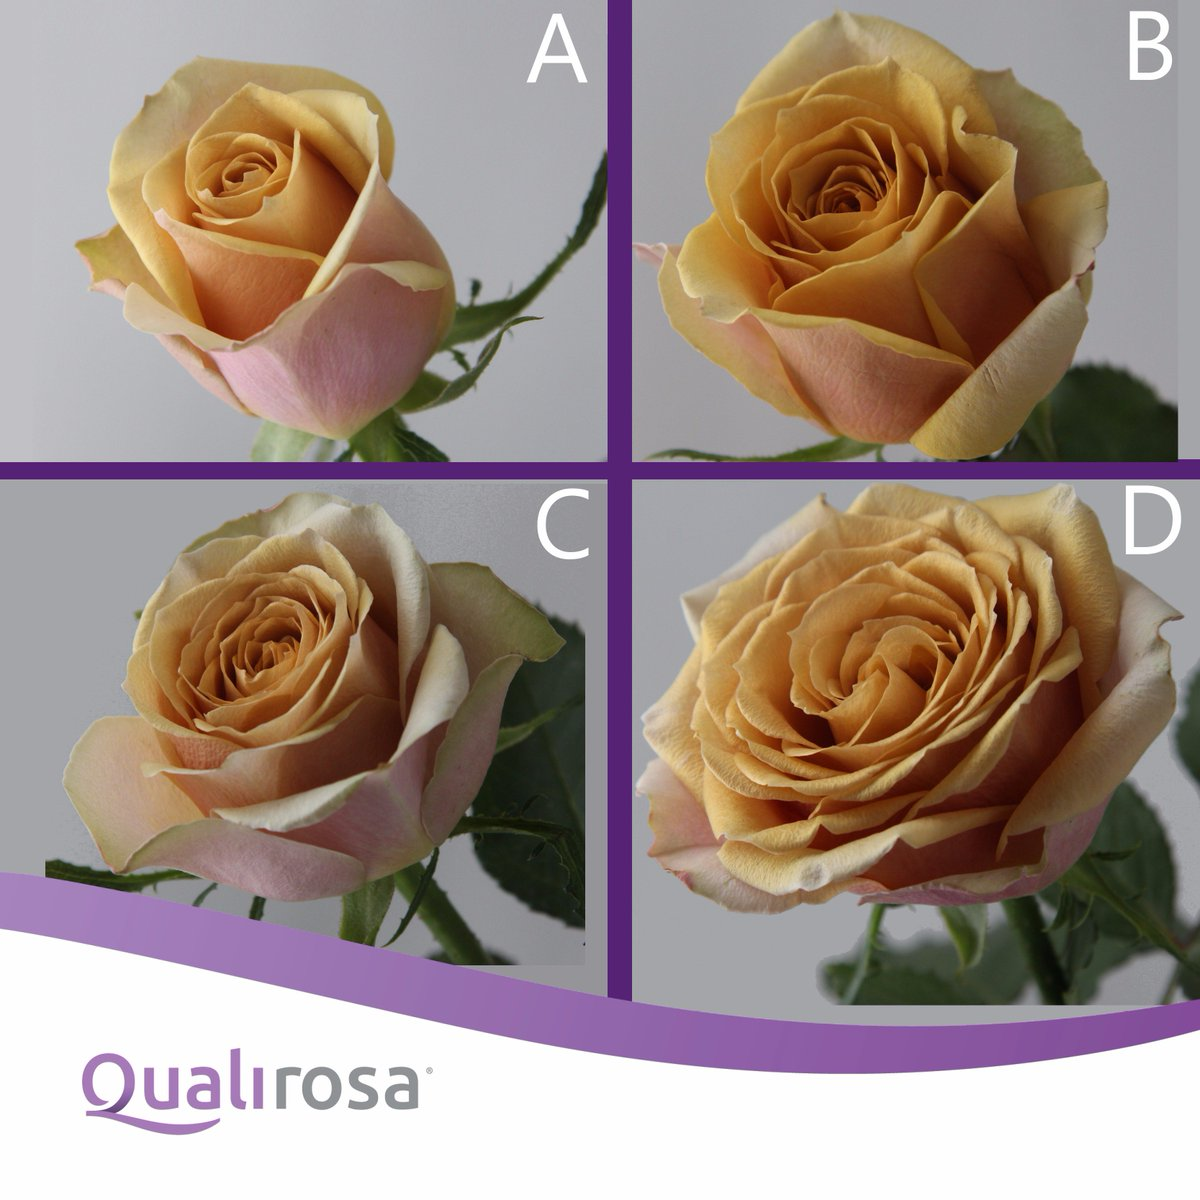 QualiRosa On Twitter Which Flower Stadium Do You Prefer Golden Mustard Rose Day 1 A 3 B 6 C And 12 D Qualirosa